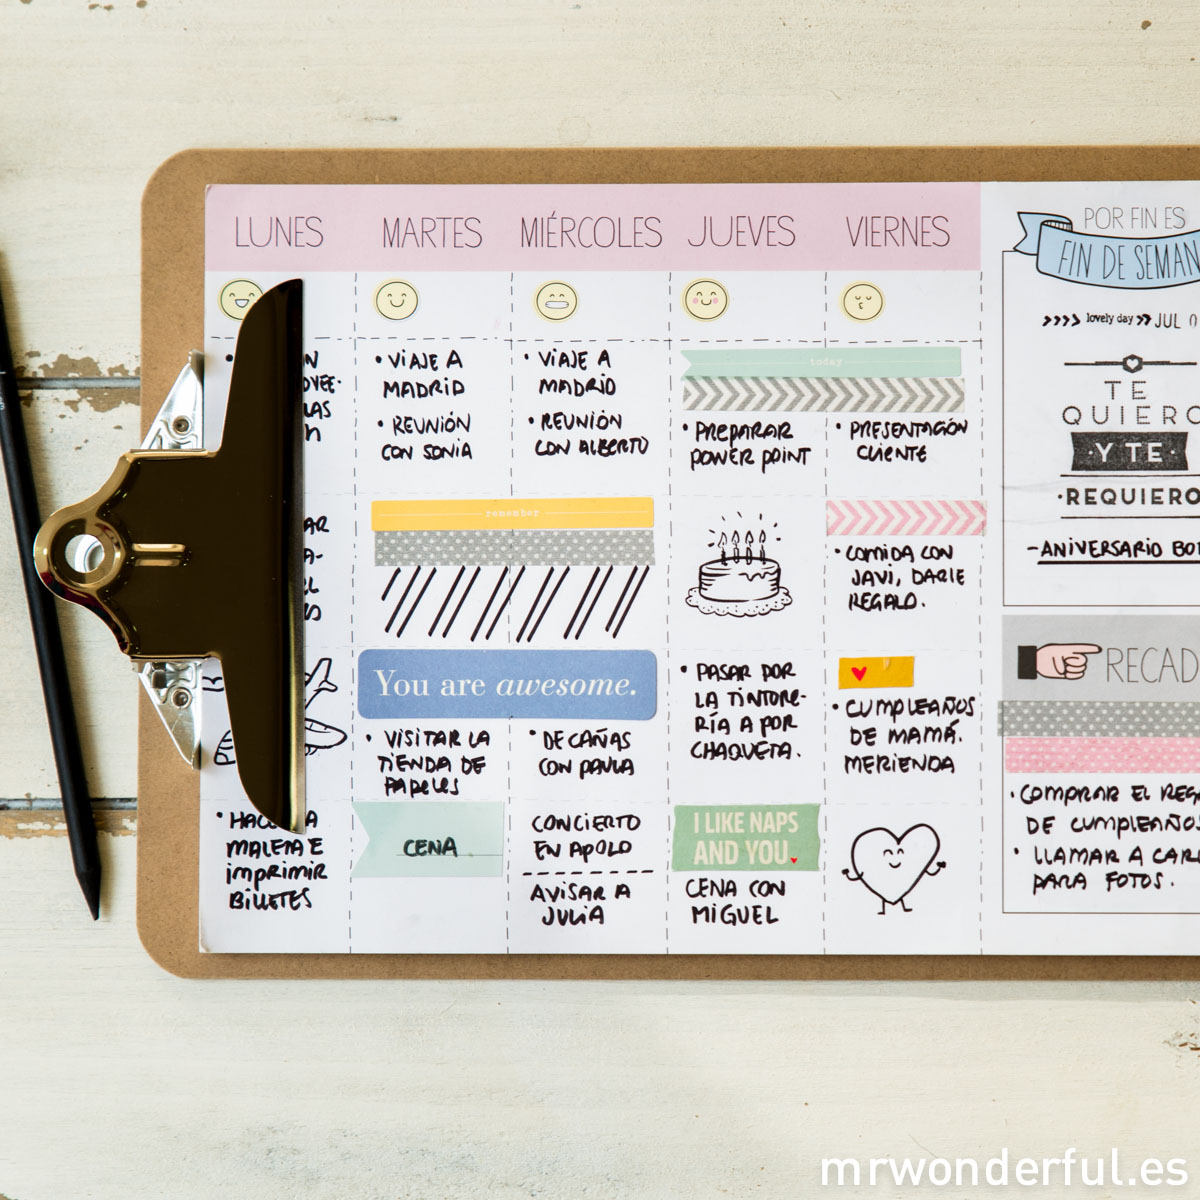 mrwonderful_CARP-01_clipboard-6